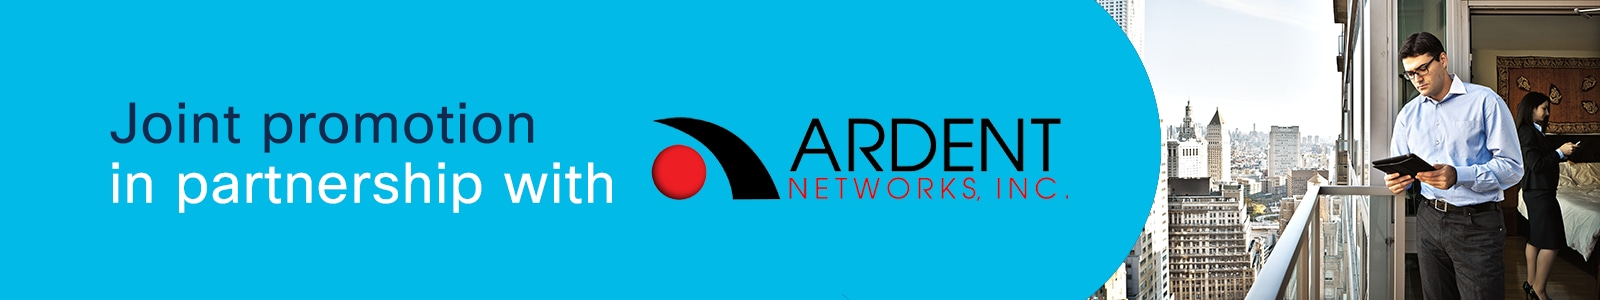 Cisco joint promotion in partnership with Ardent Networks